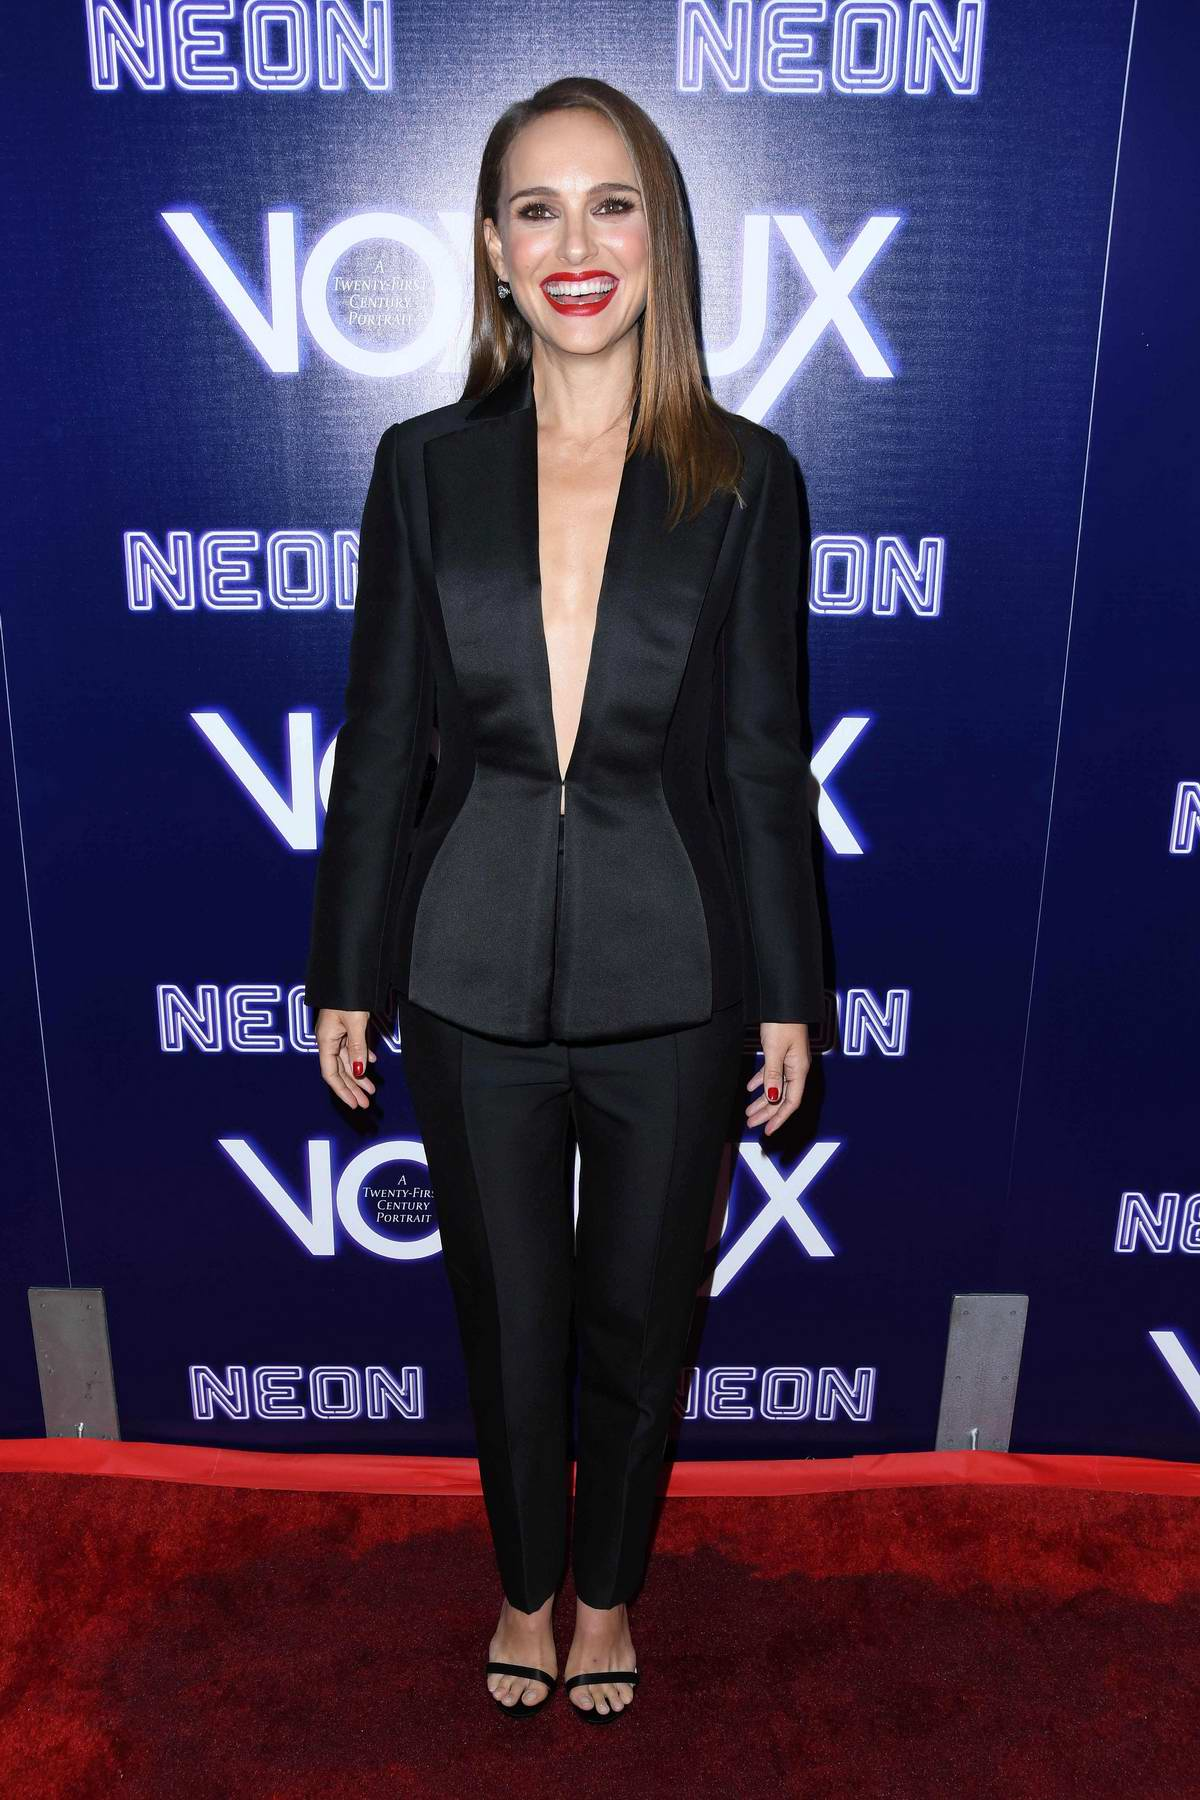 Natalie Portman attends 'Vox Lux' Premiere in Hollywood, California